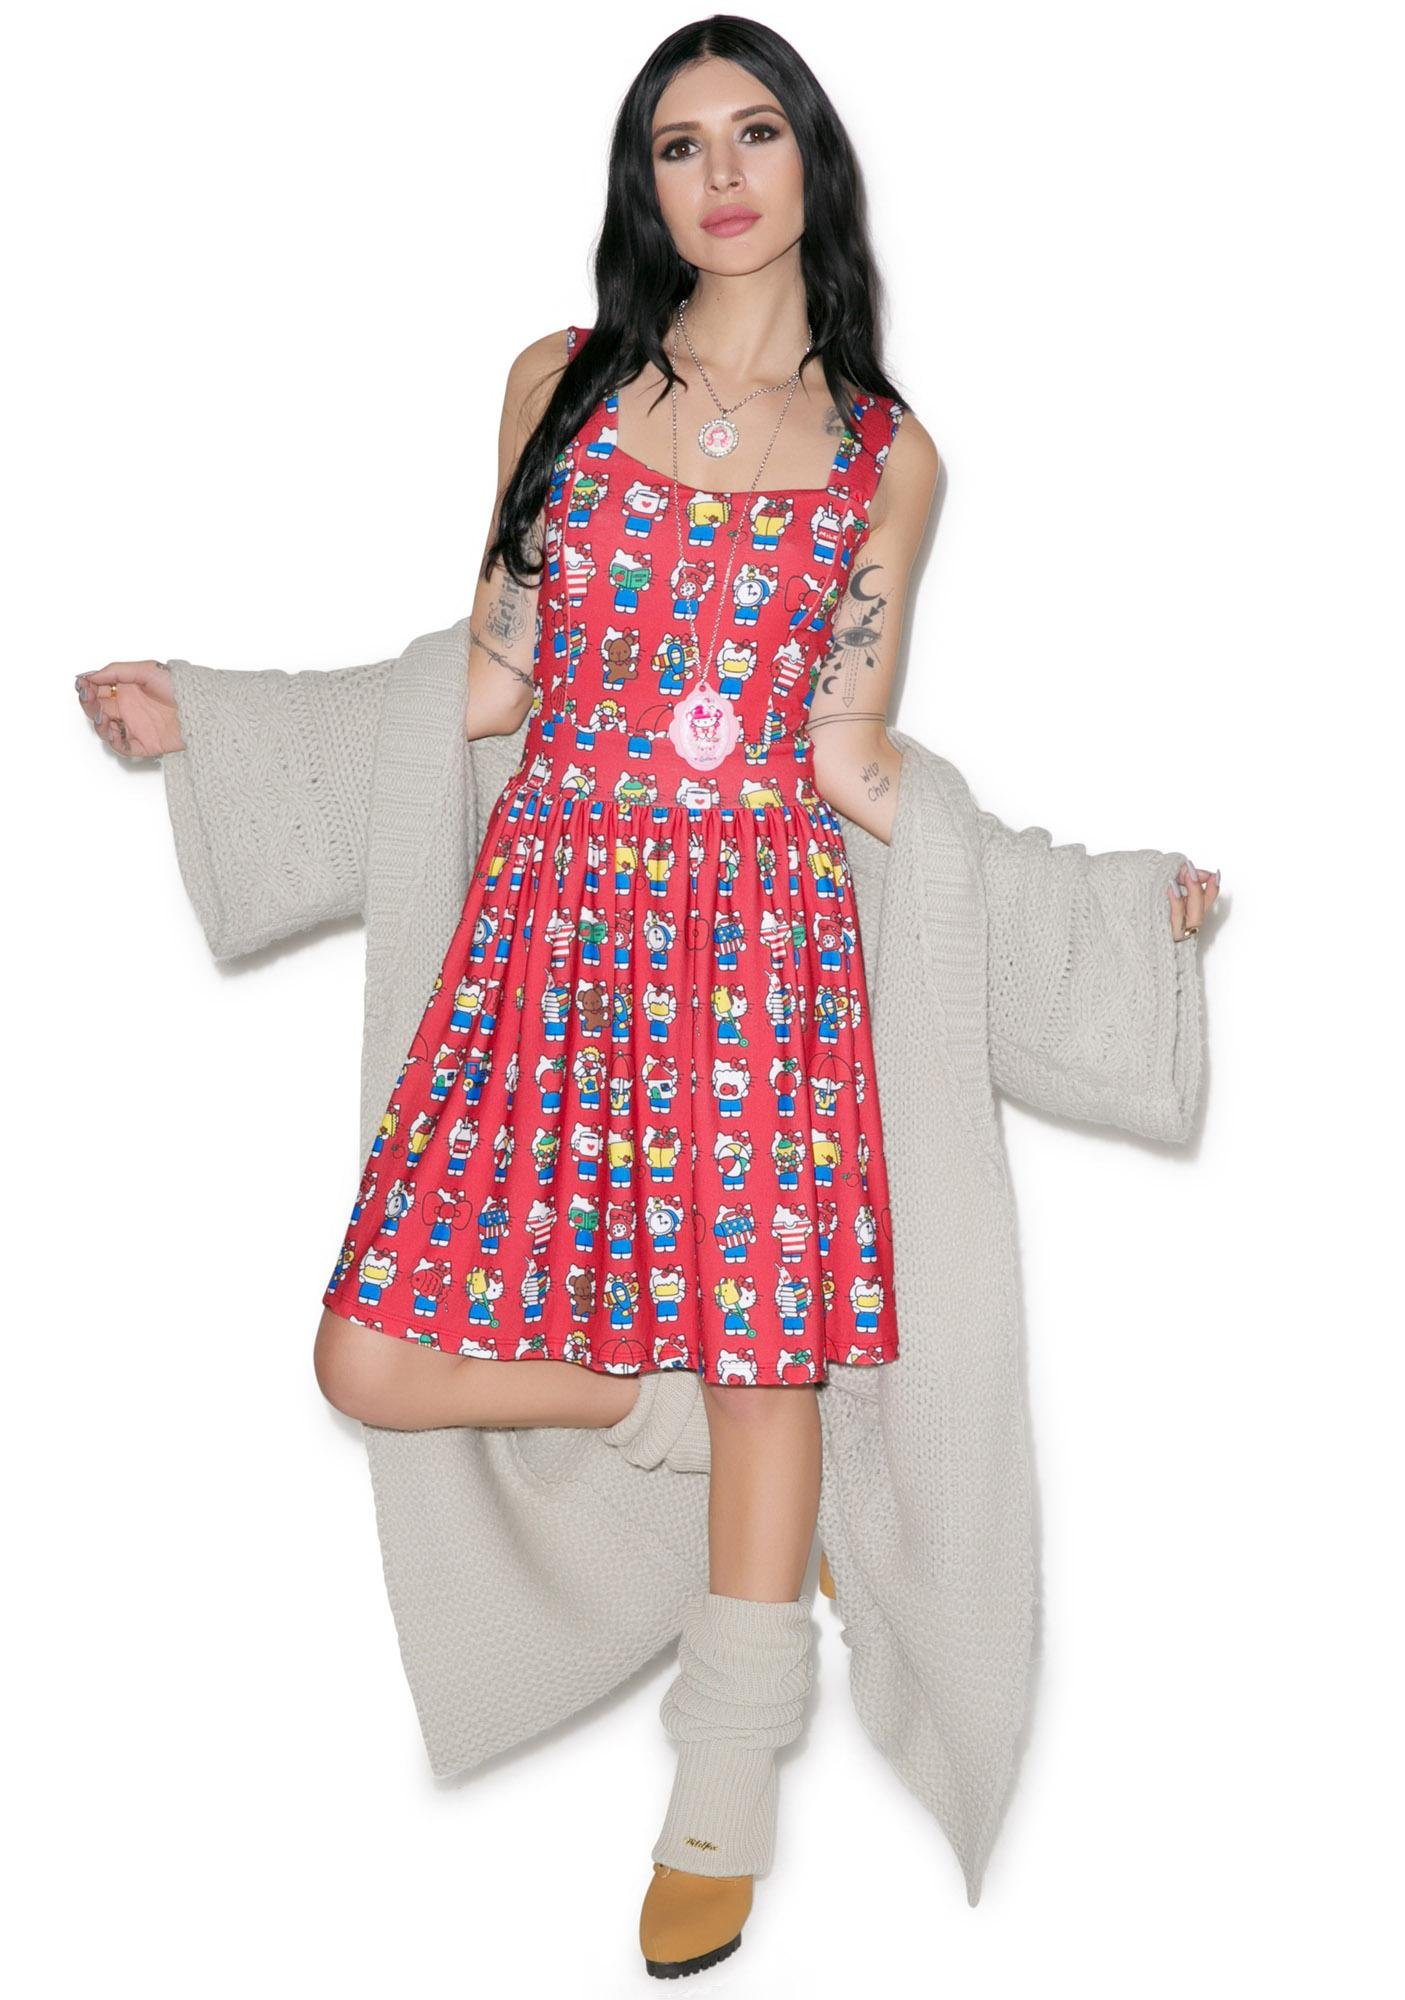 Japan L.A. All My Favorite Things Dress